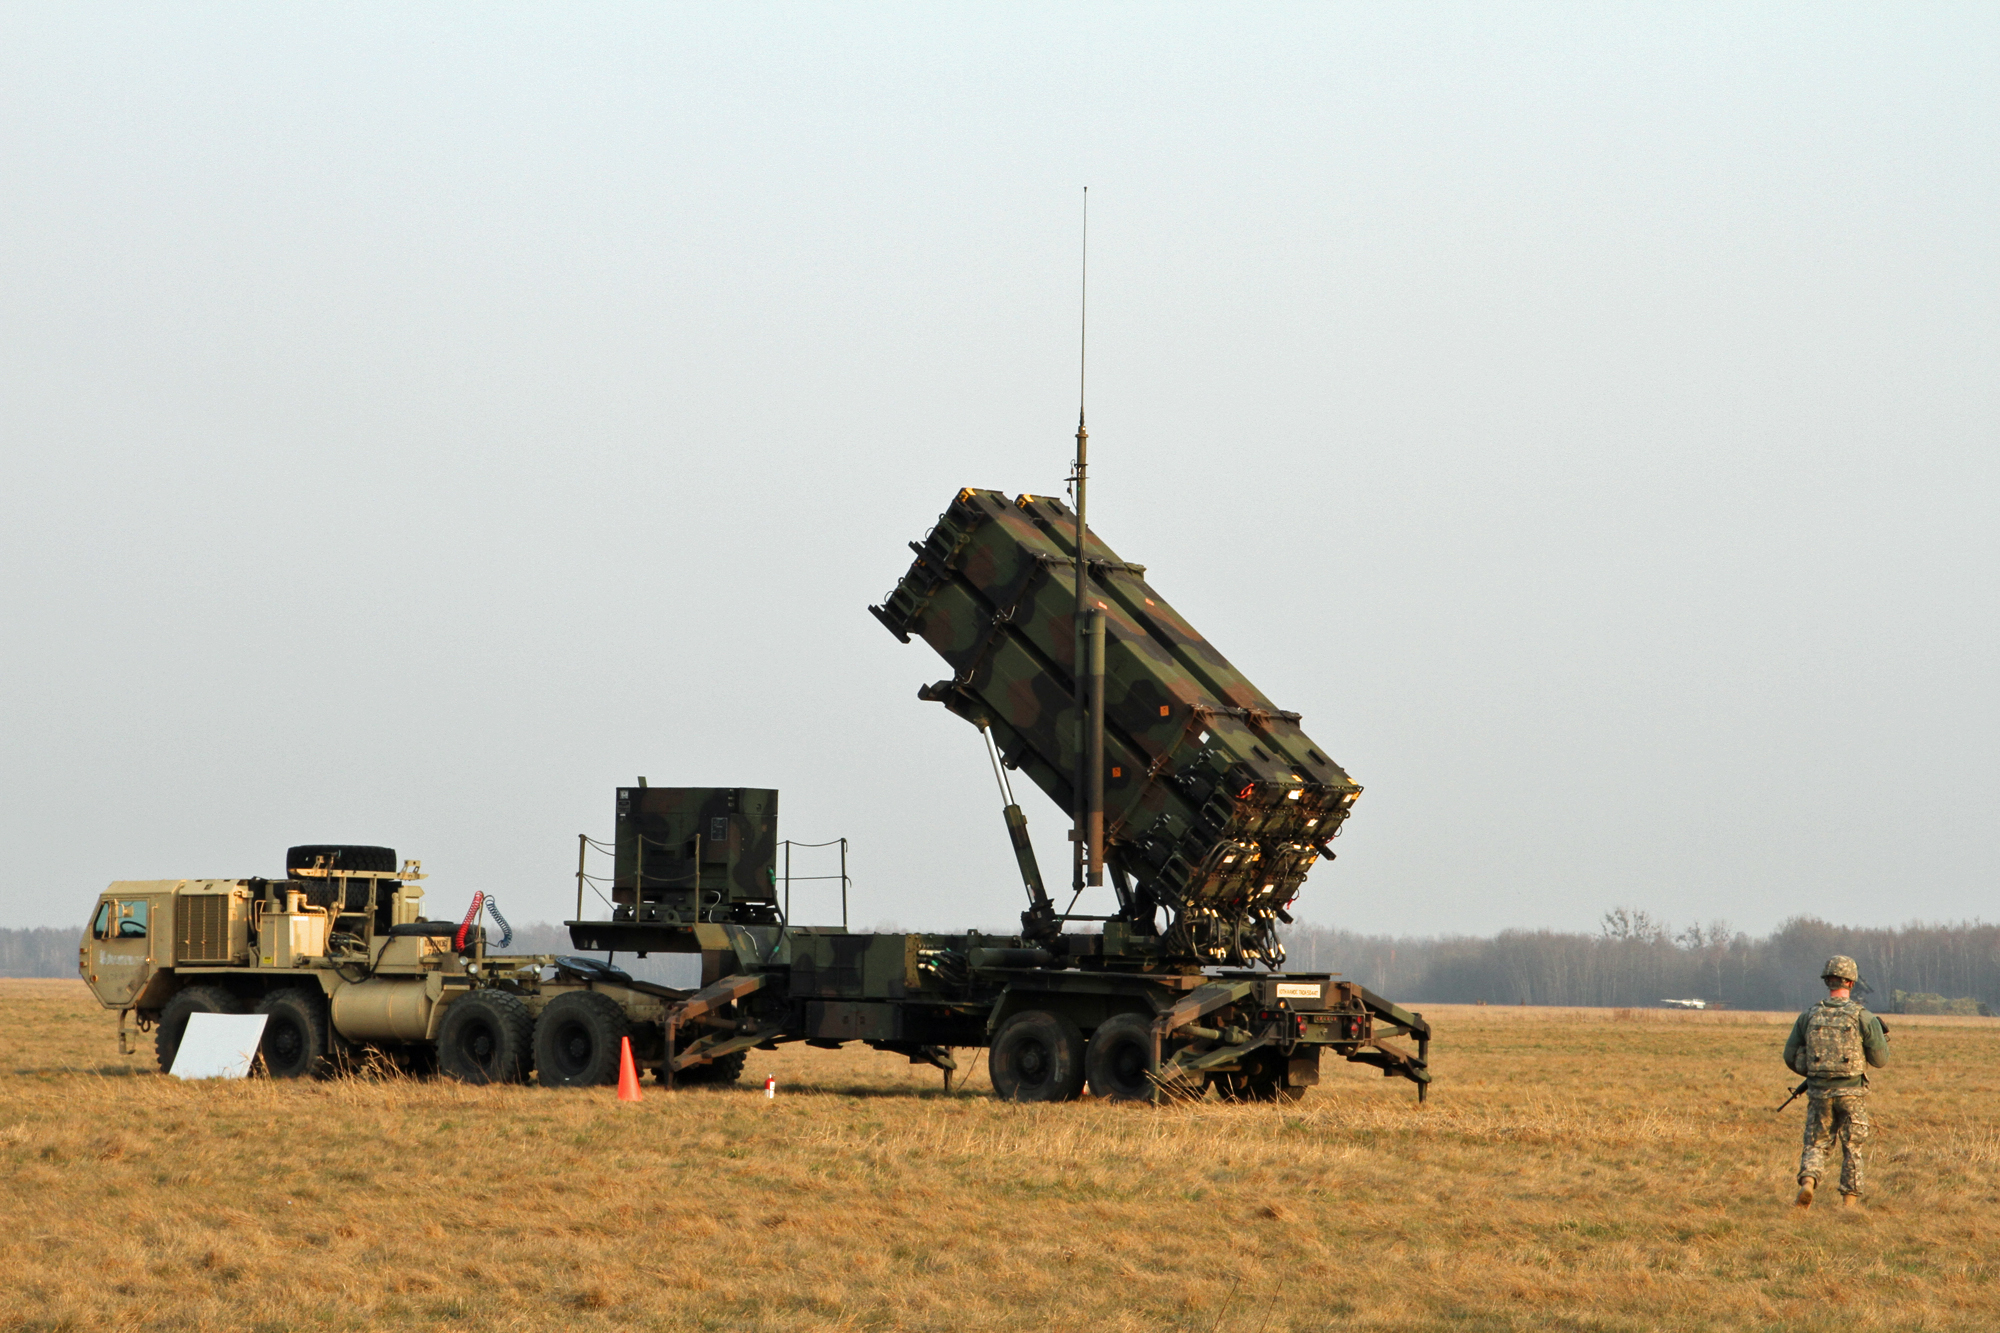 Patriot missile launcher, Poland